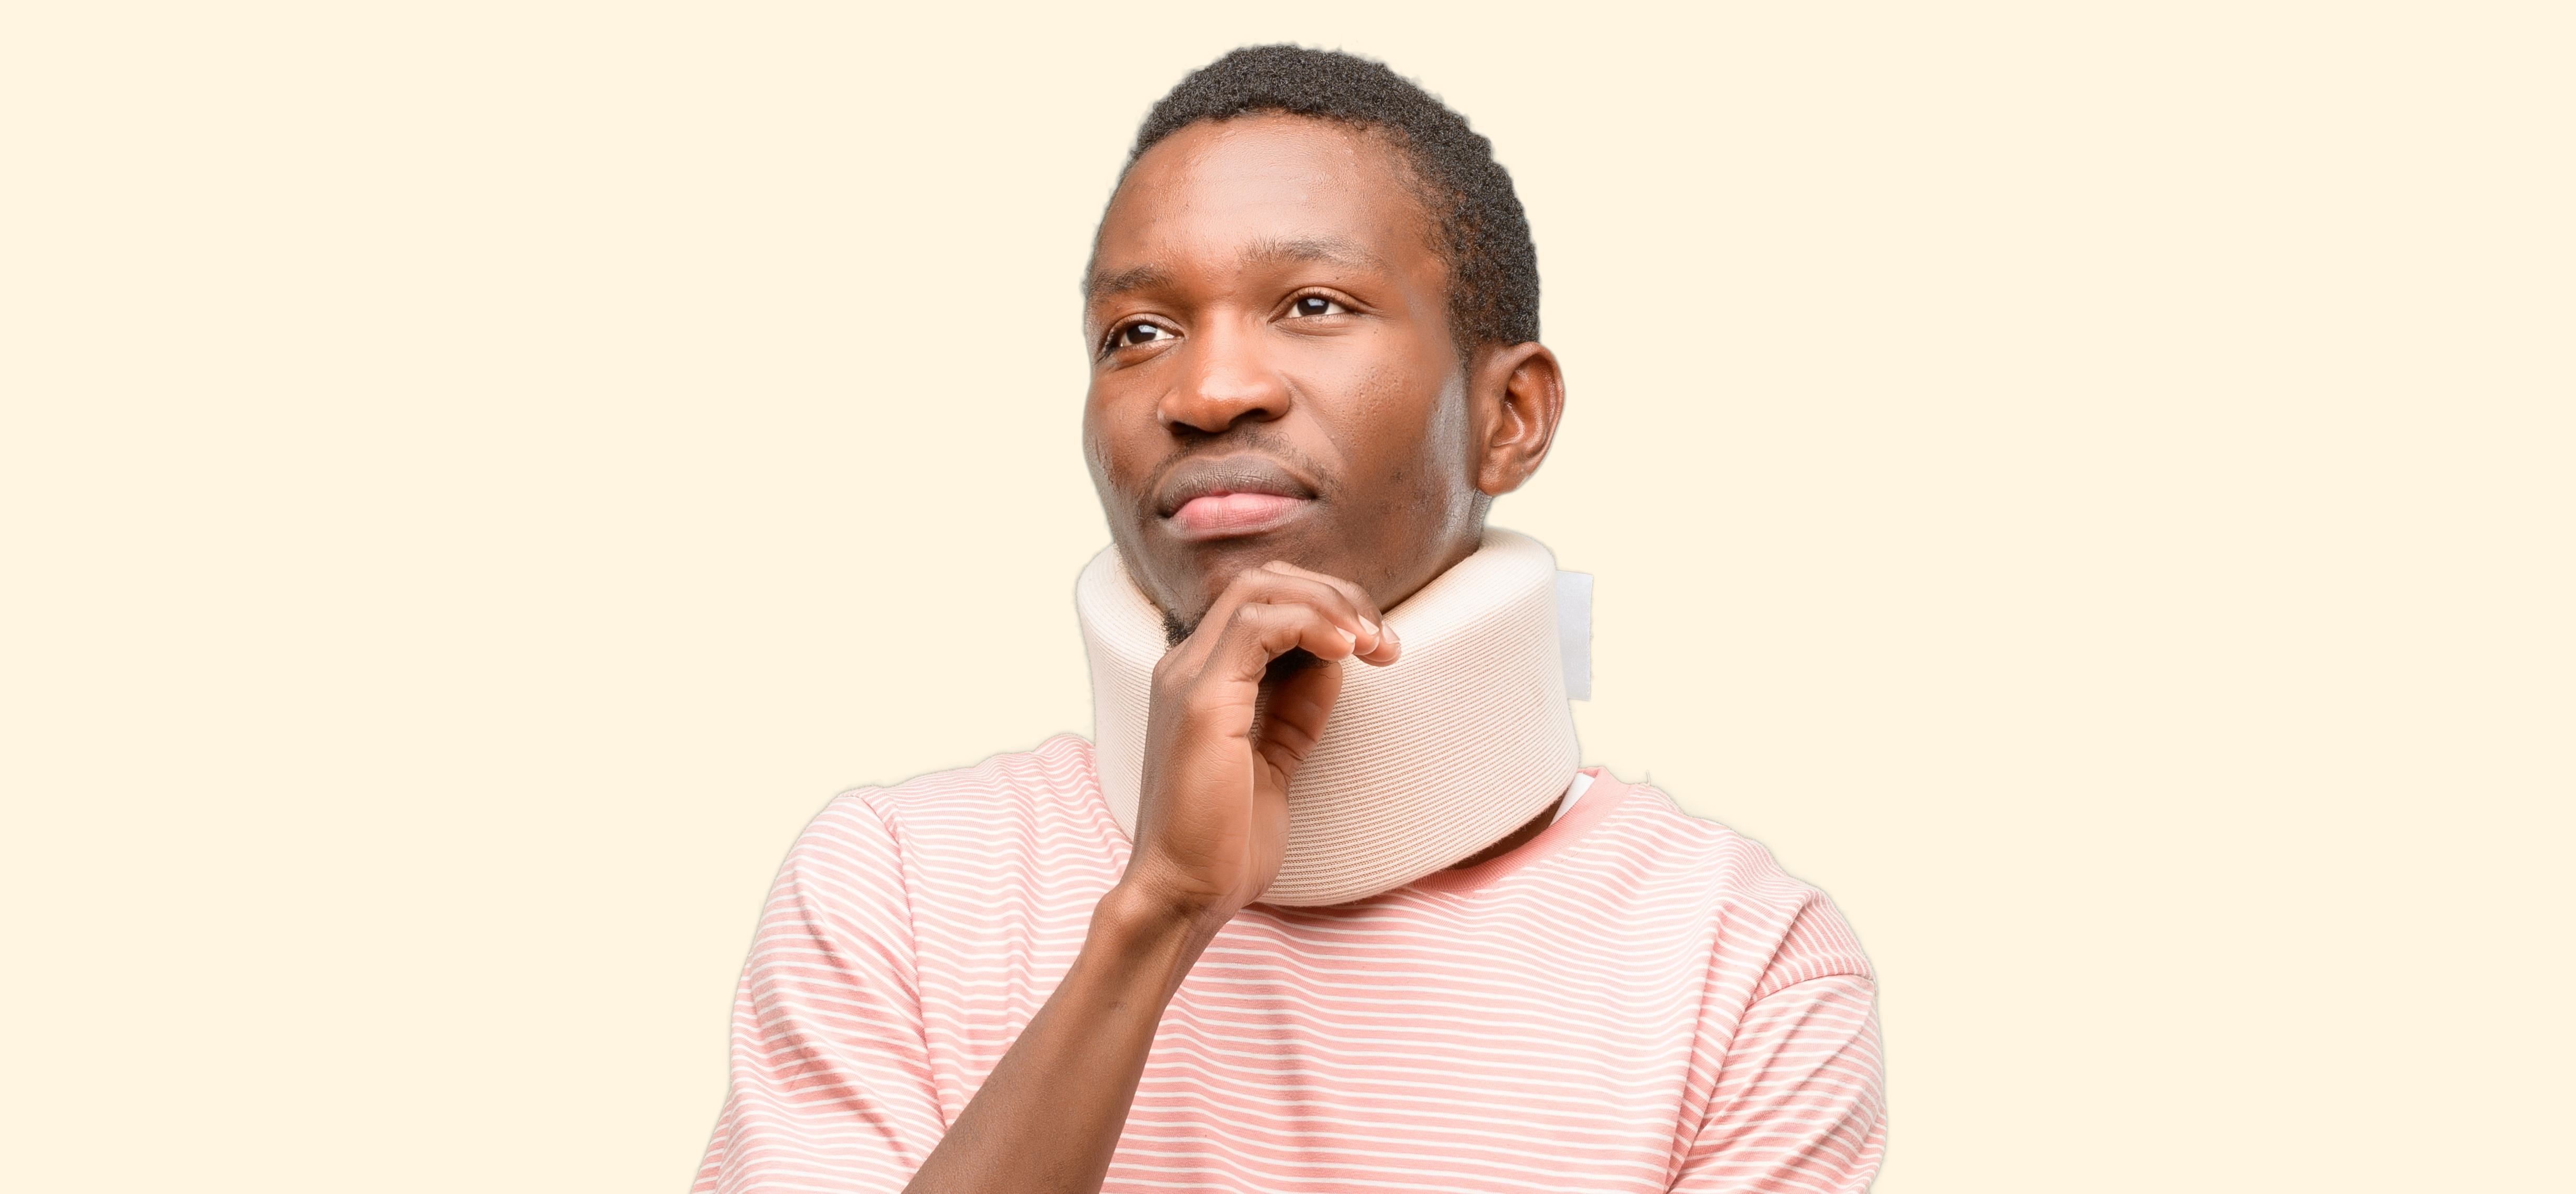 Man in neck brace wondering